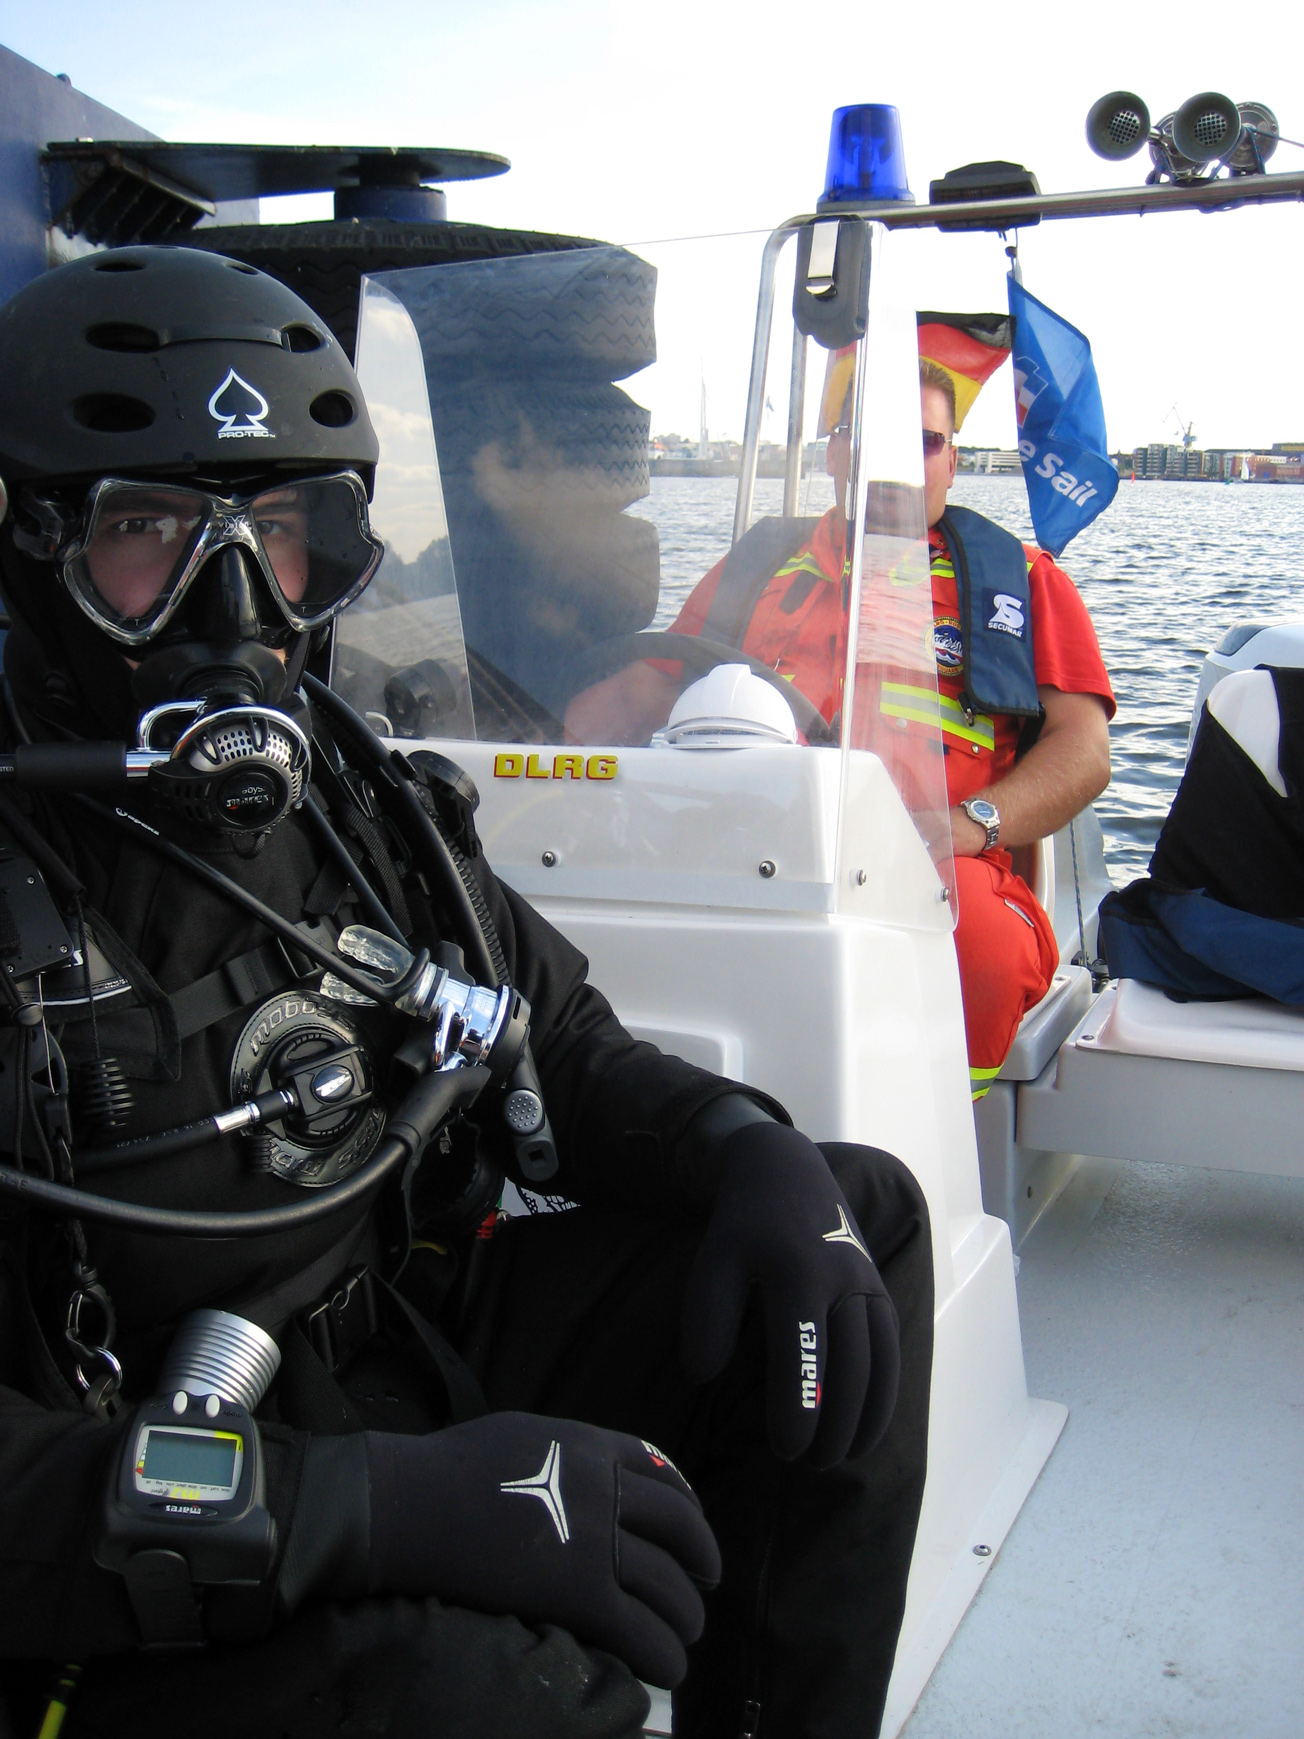 MG-Action, Martin Goeres, Safety Diving